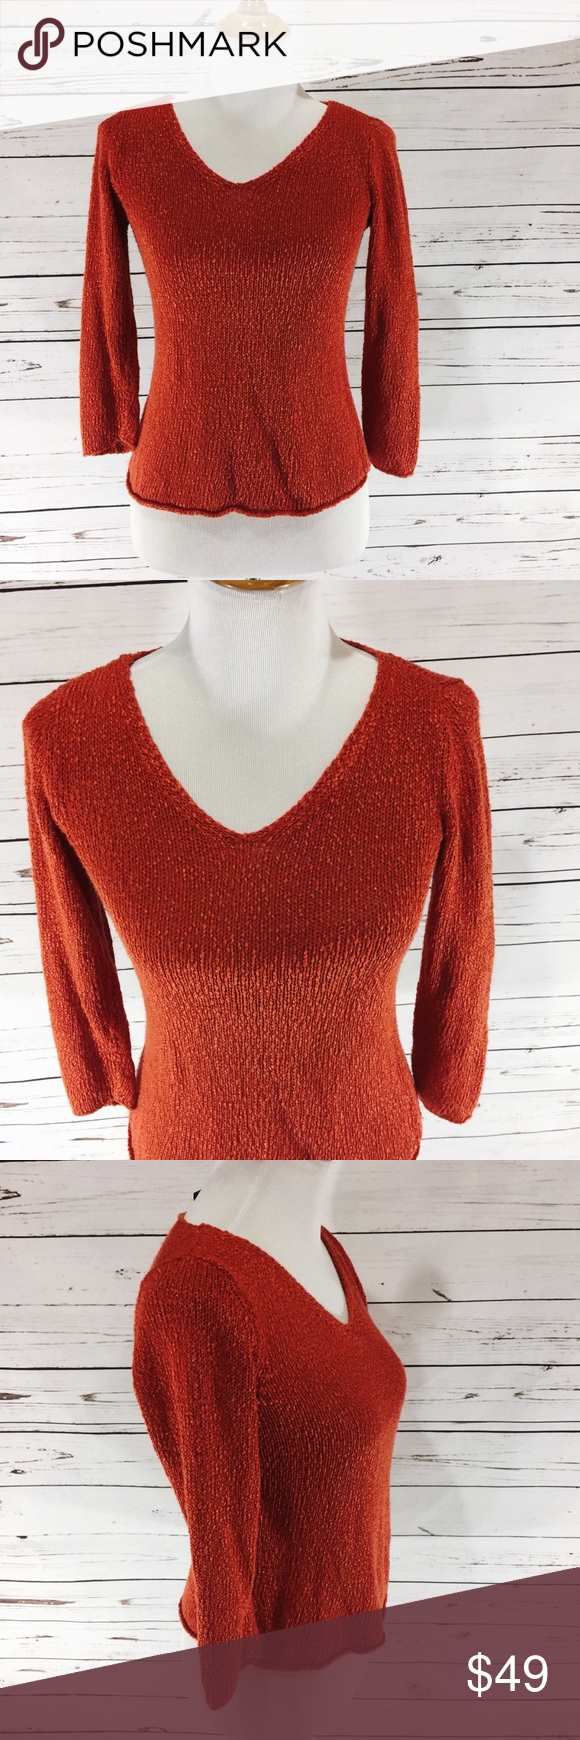 EILEEN FISHER} Italian Yarn Orange Fall Sweater